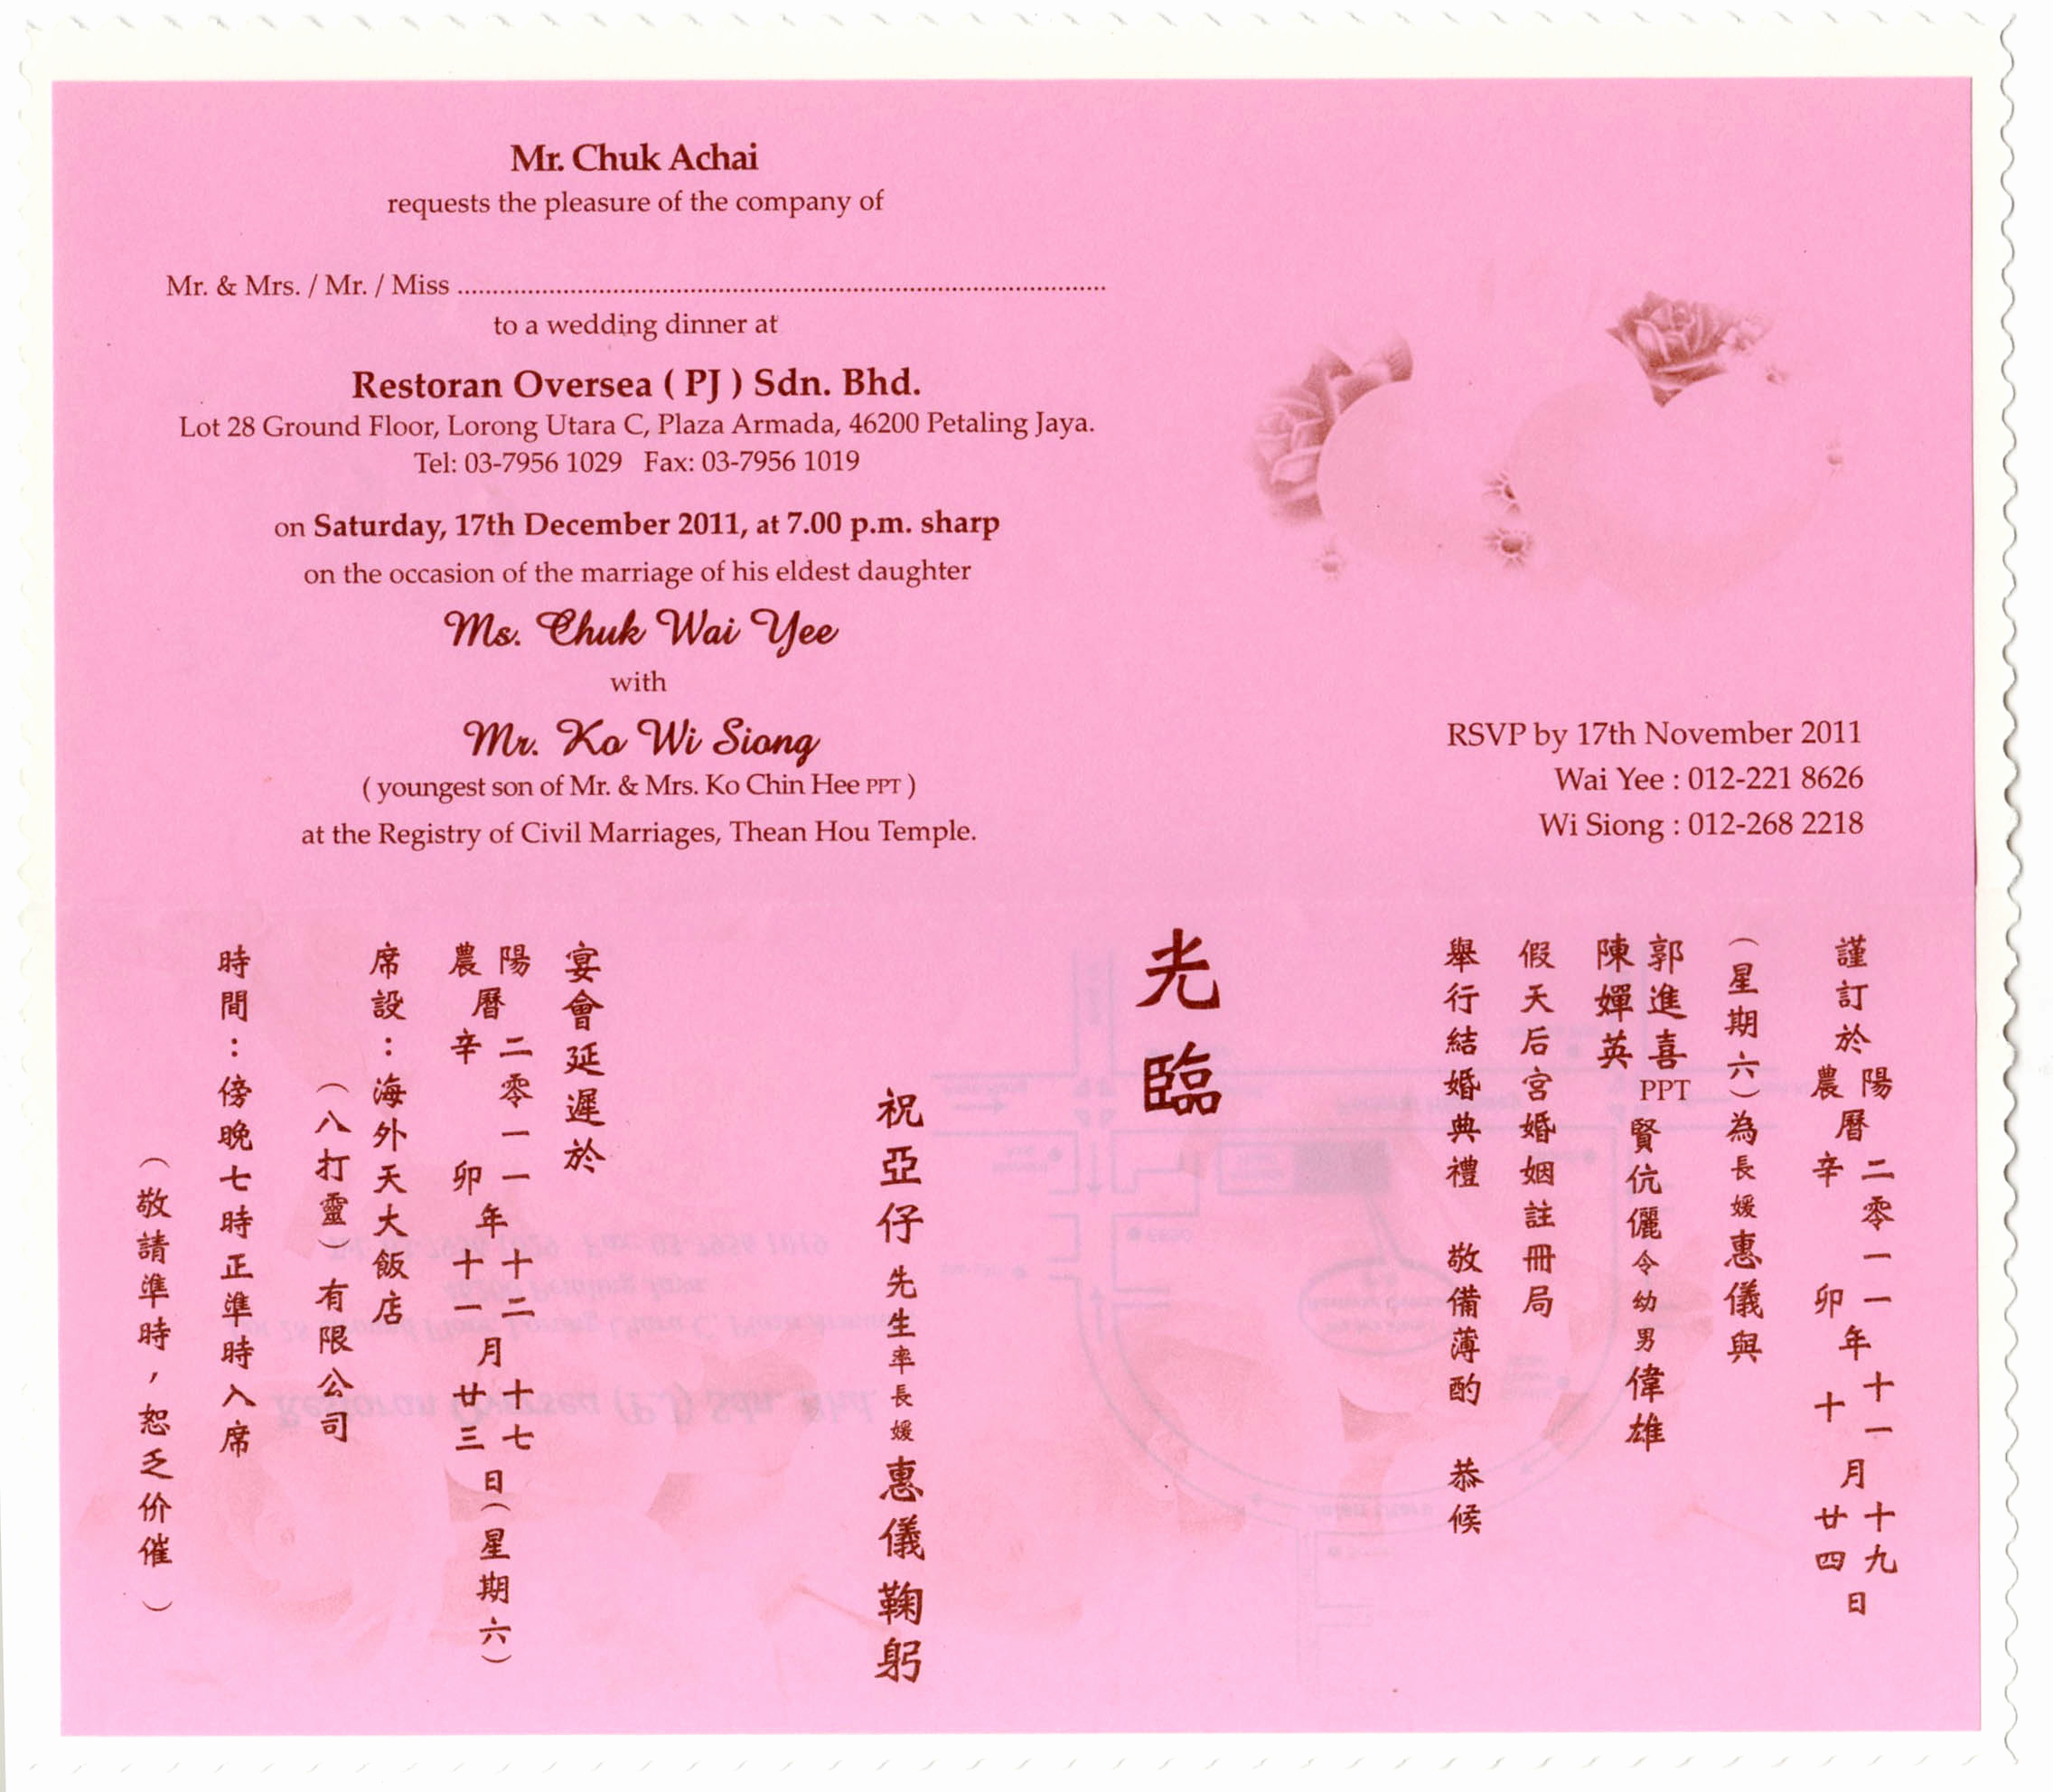 Chinese Wedding Invitation Card Luxury Malaysian Wedding Reception – Chinese Style